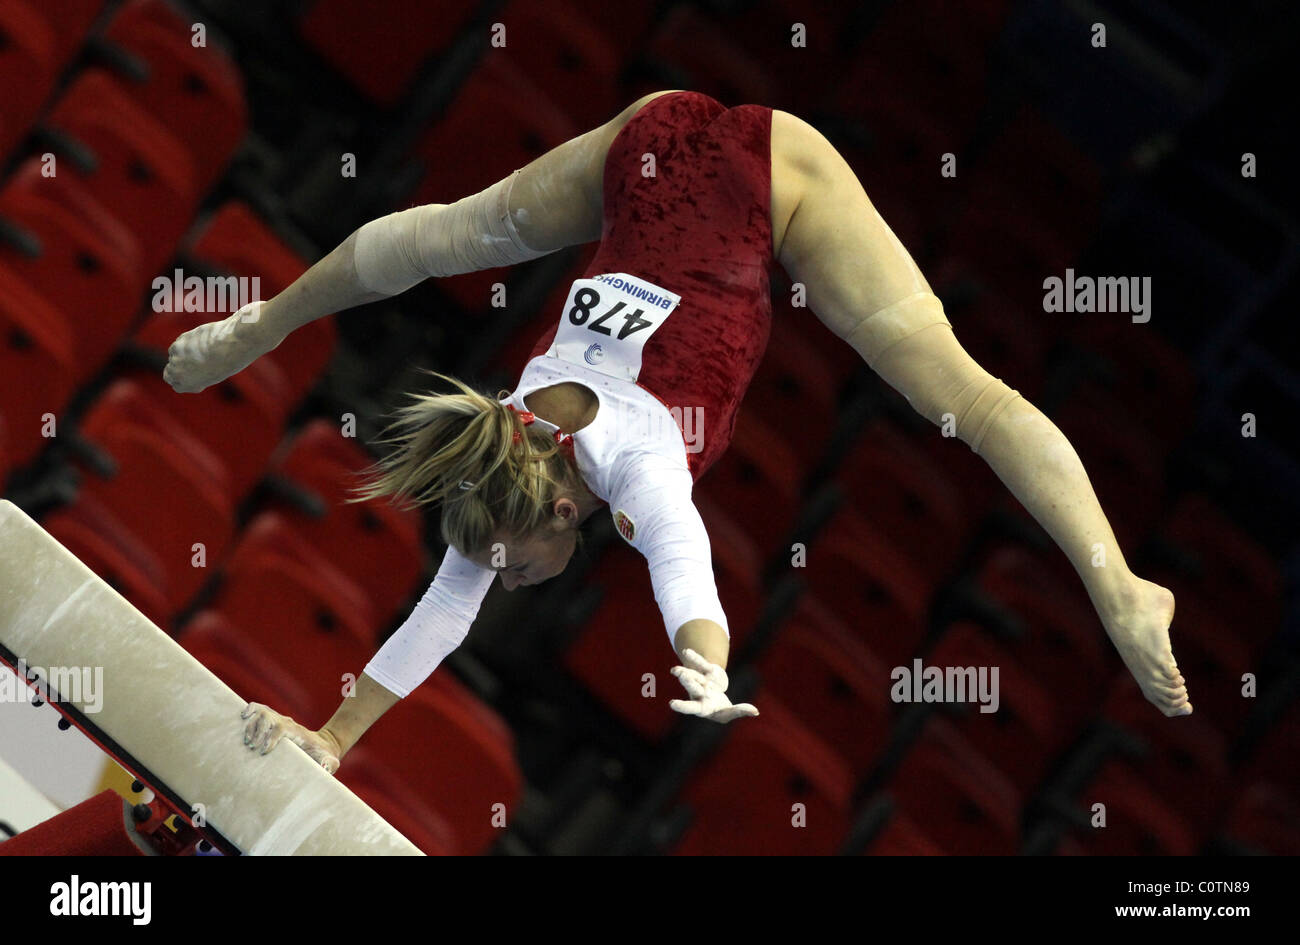 Female Gymnast Performs A Handstand Using Only One Arm On